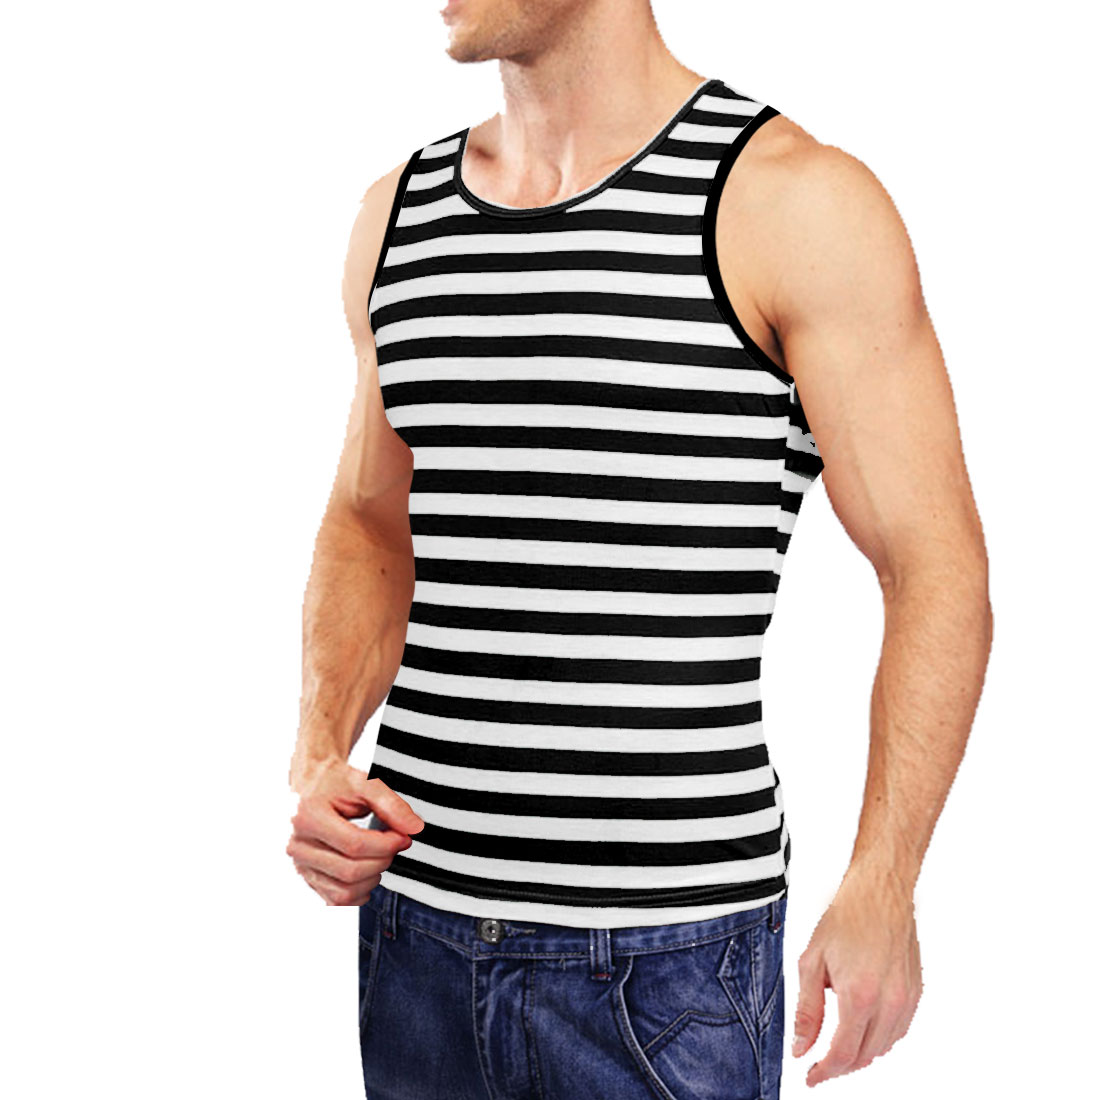 Mens Black White Sleeveless Contrast Stripes Leisure Tank Tops S